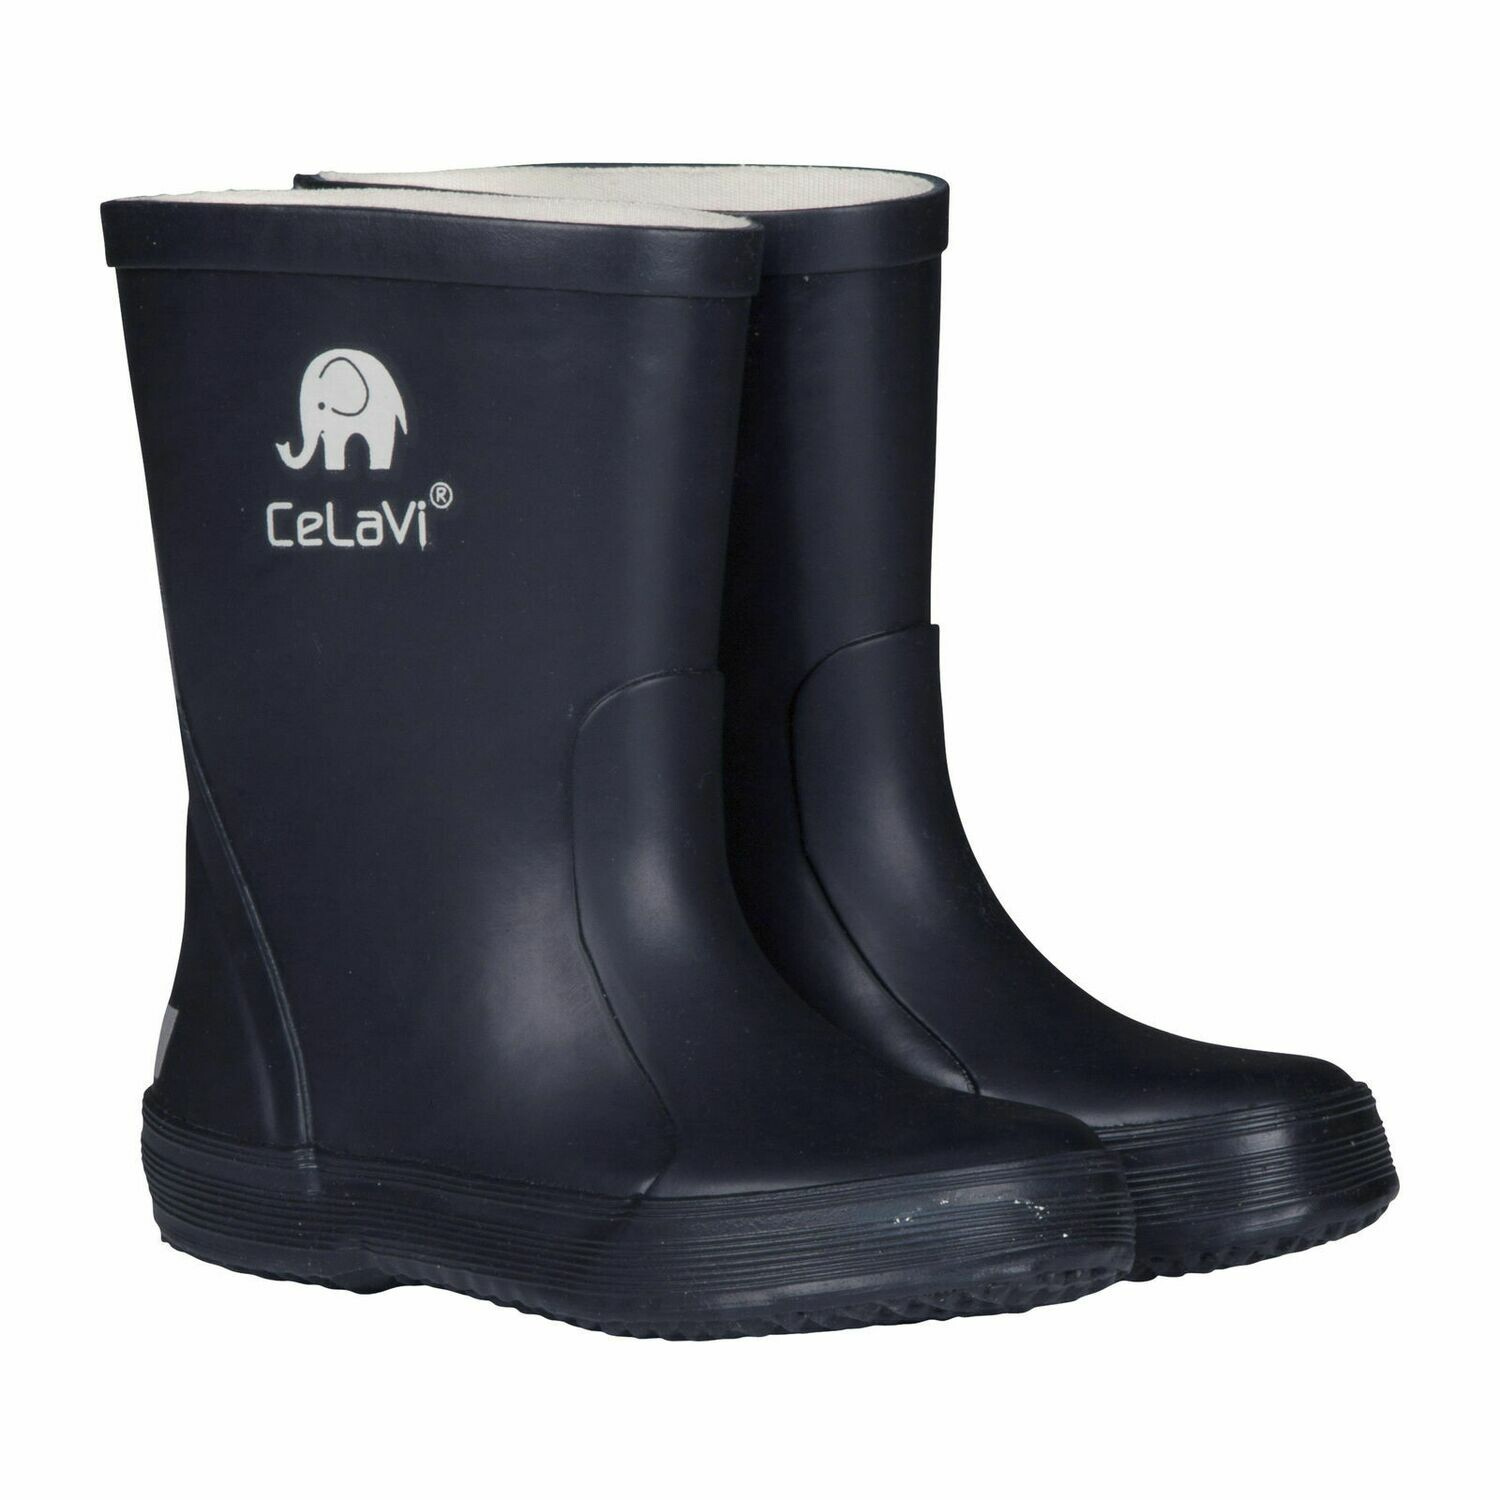 CELAVI BASIC WELLIES, Dark Navy